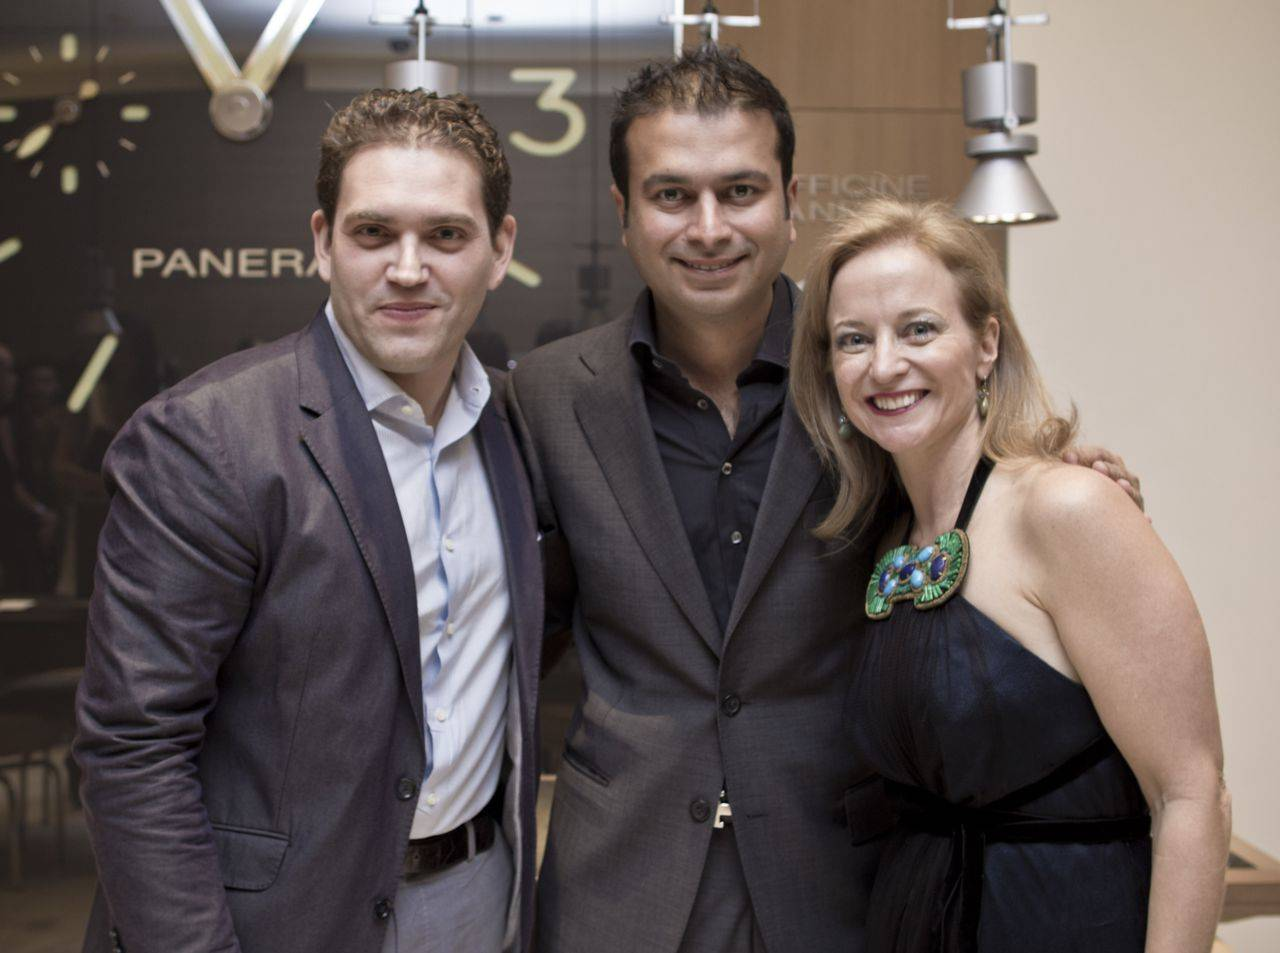 Raphael Alvarez, Kamal Hotchandani and Michelle Gallagher